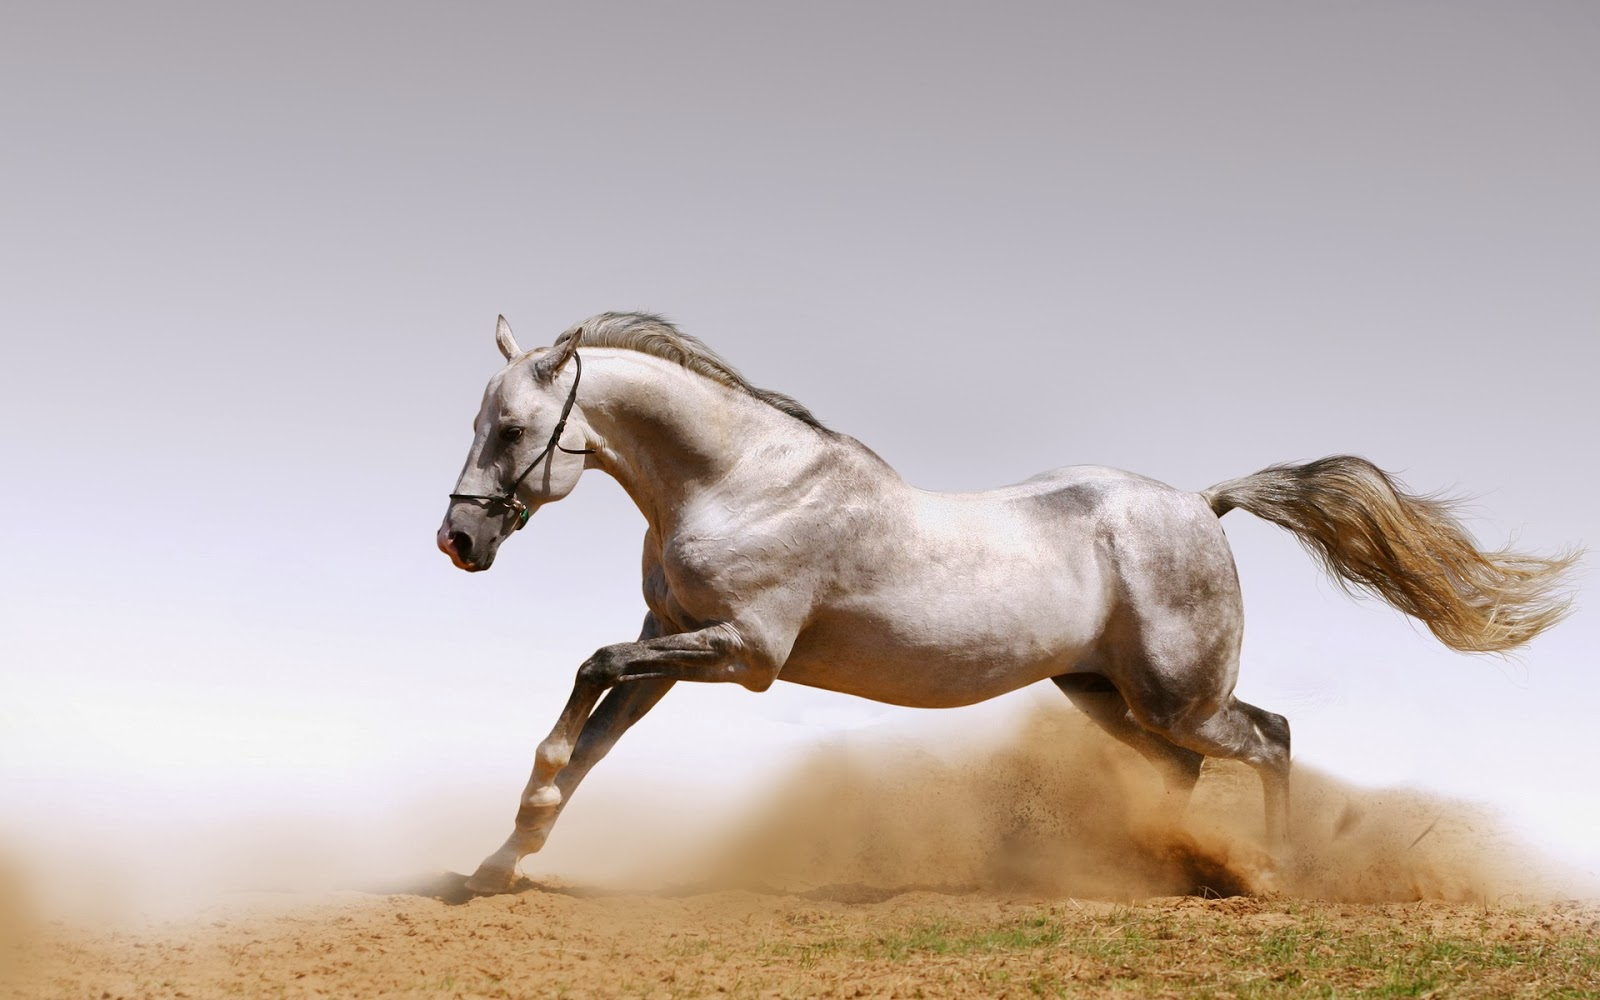 These Are Very Powerful And Stunning We Have Put Here Some Unique Beautiful Wallpapers Of Horses That Will Come Up To Your Taste Hopefully